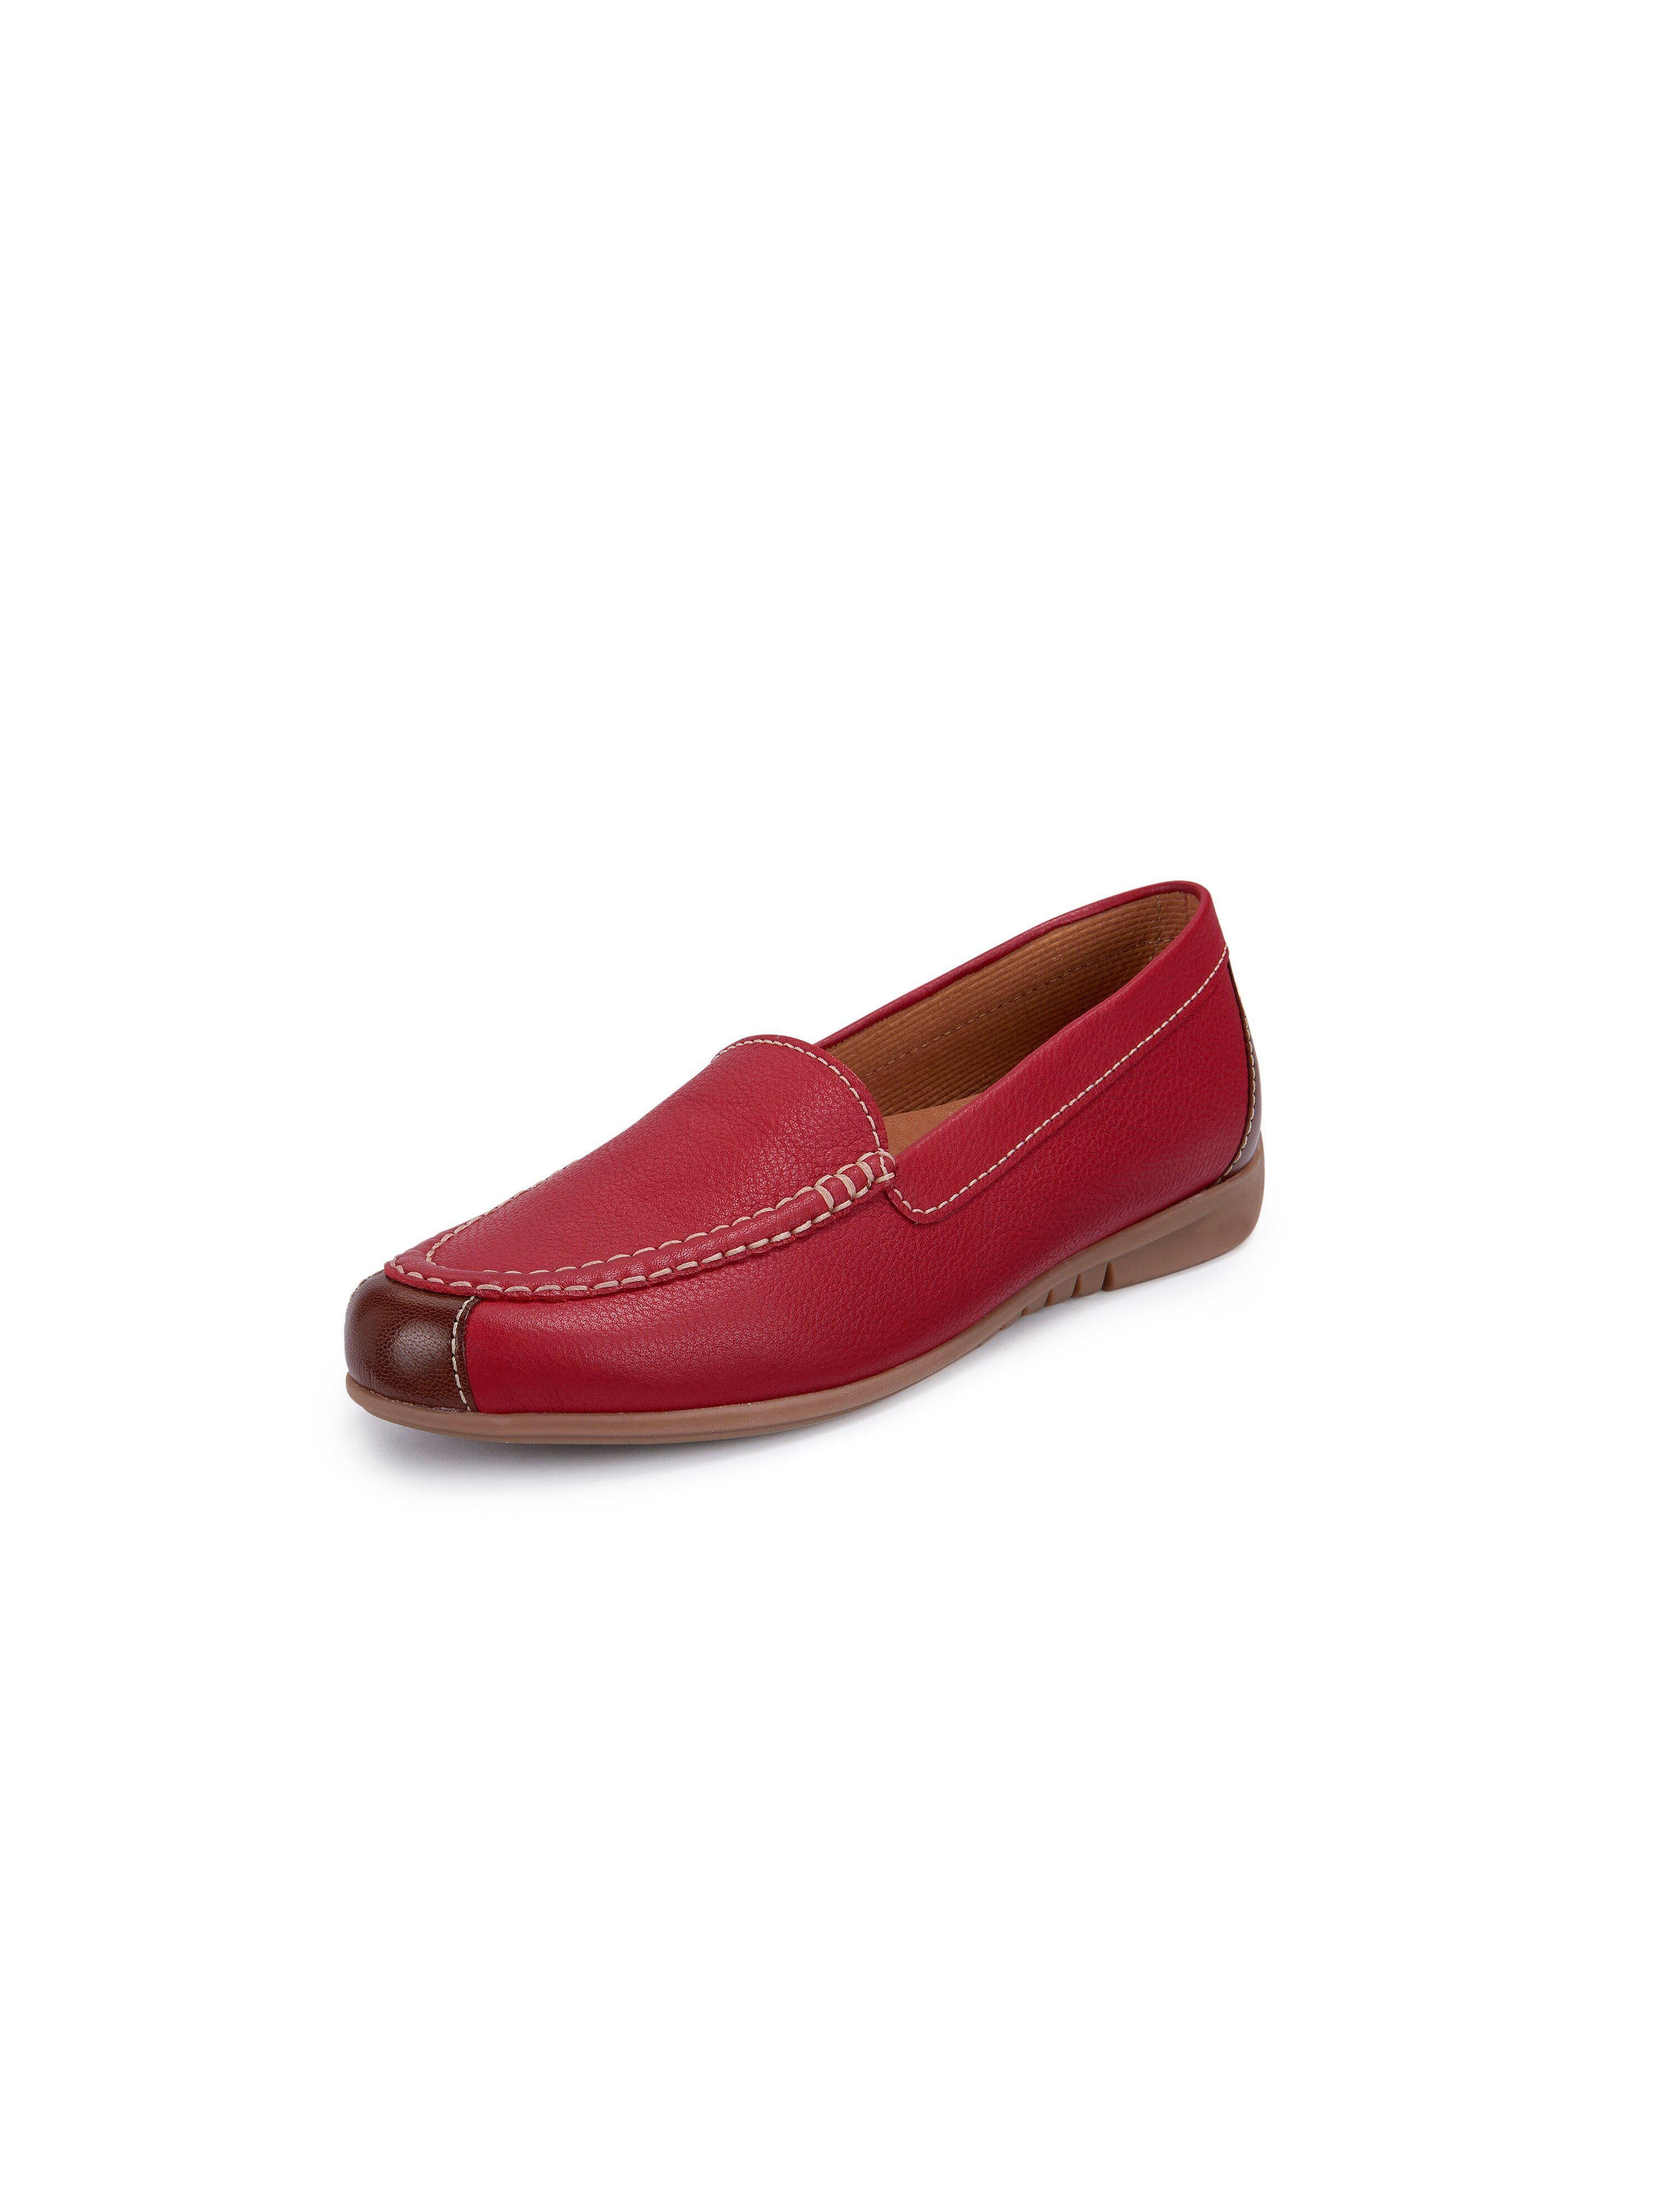 Loafers Gabor red